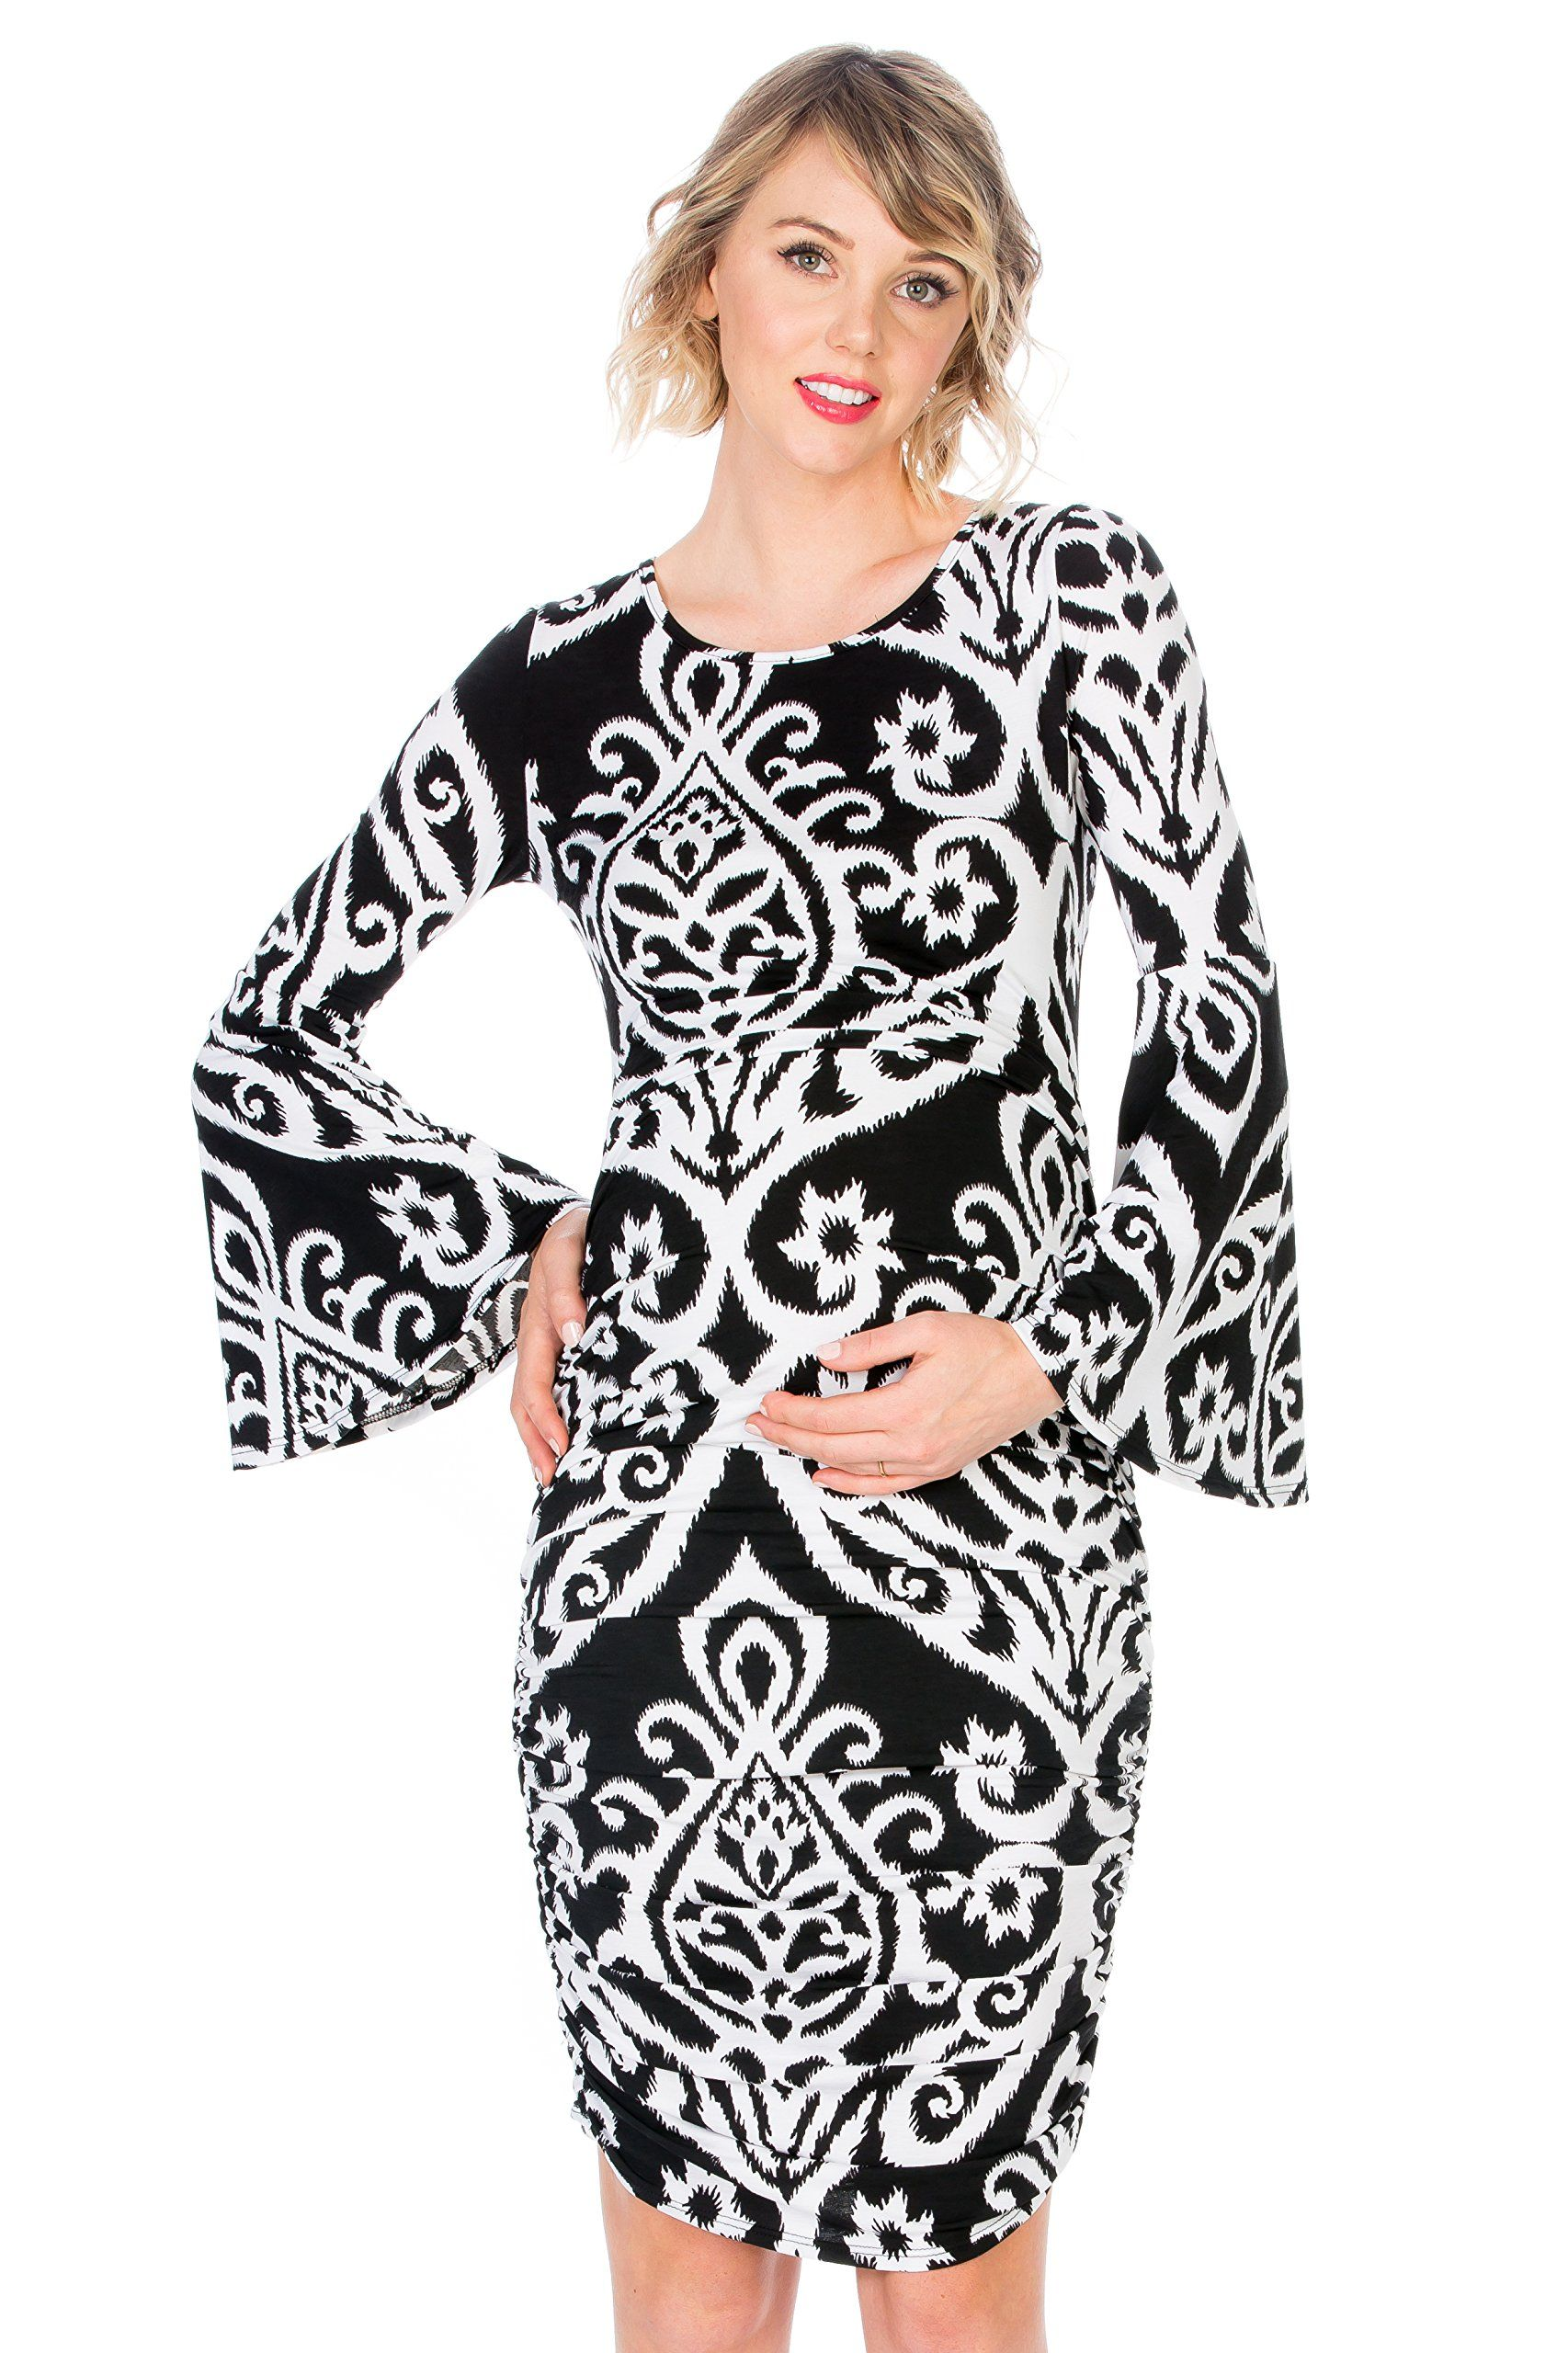 9a9a8a63b1 Maternity Outfits - comfortable maternity maxi dress : My Bump Womens  Maternity Fitted Bell Sleeve Dress W/Ruched Blk/Ivory DM XLarge ** Click  image to ...